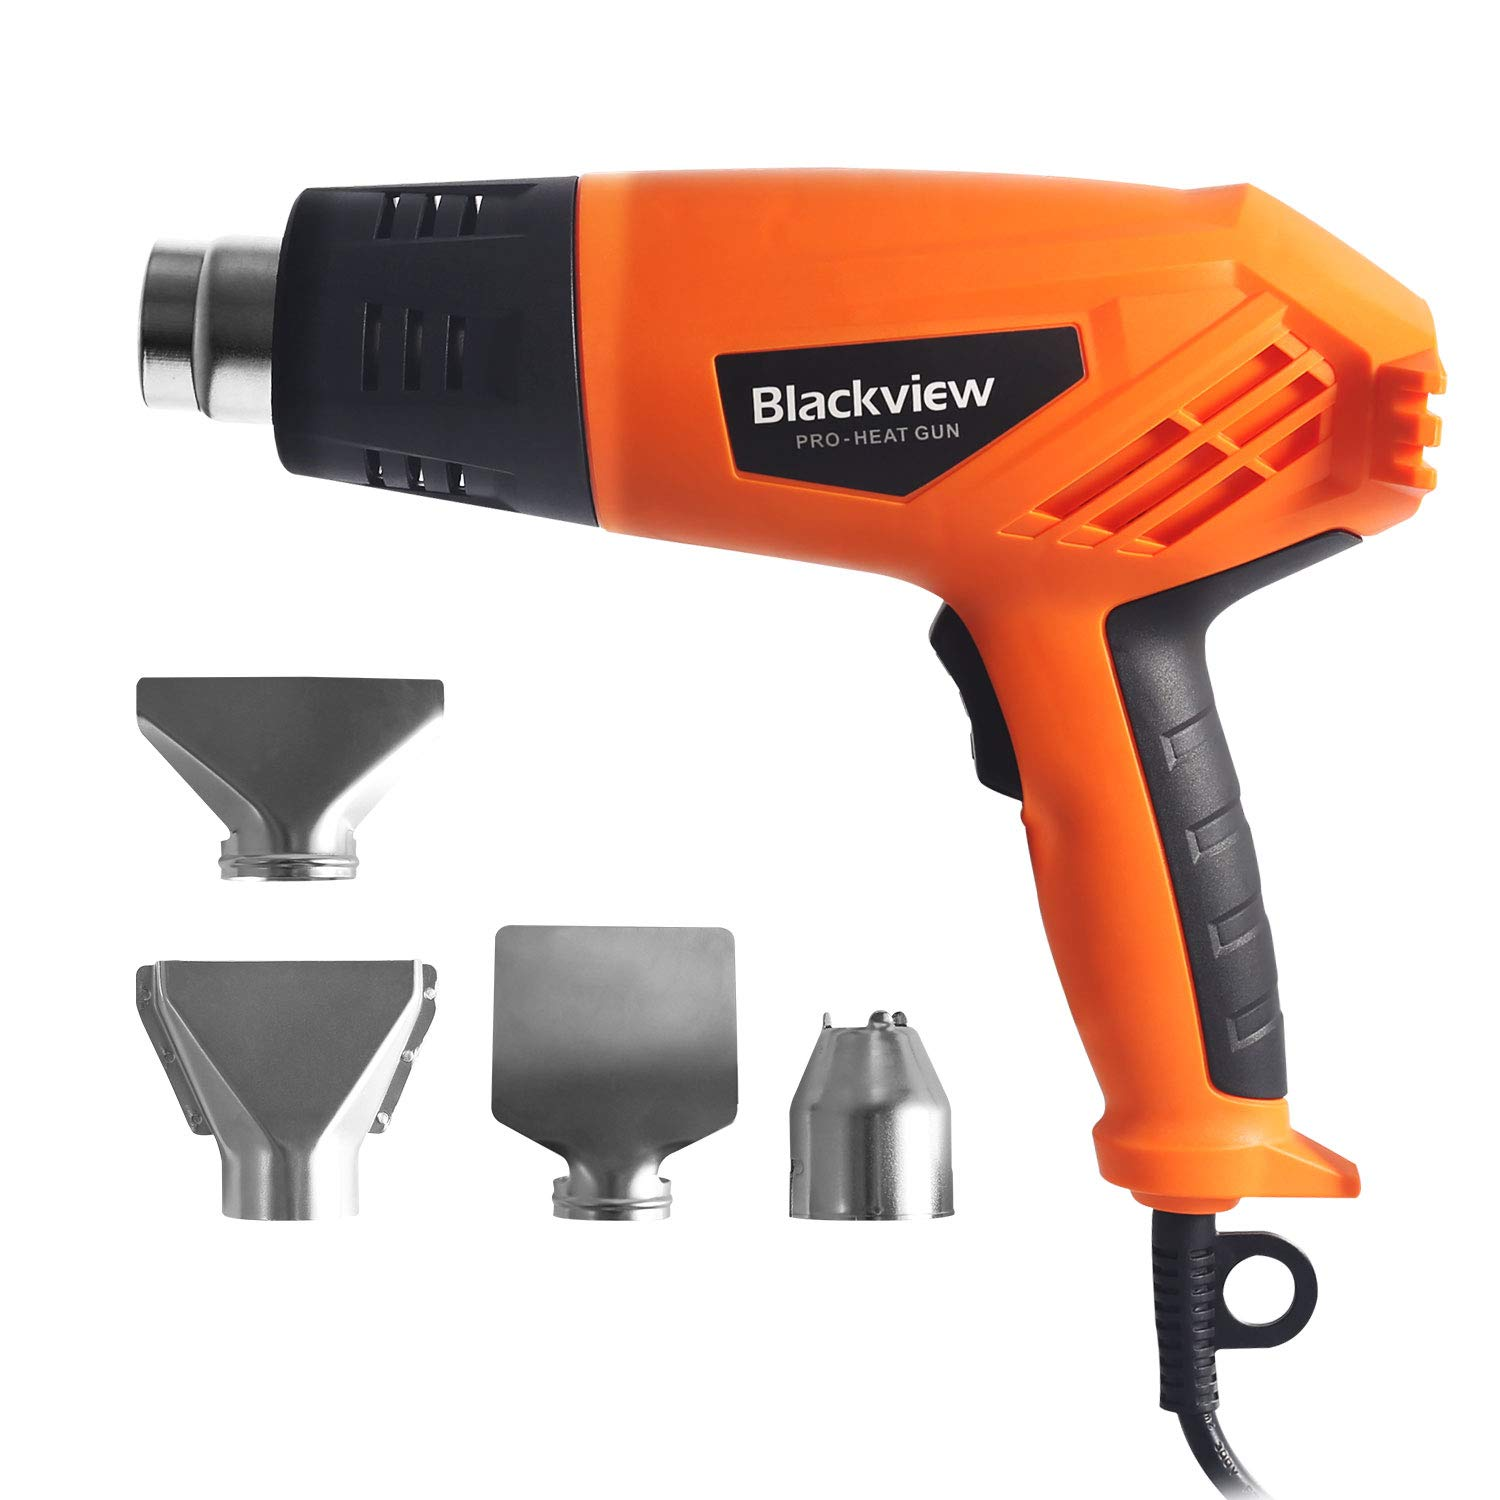 Blackview Heat Gun 1500W Heavy Duty Hot Air Gun with 2-Temp Settings 4 Nozzles 662℉~1022℉(350℃- 550℃)with Overload Protection for Crafts, Shrinking PVC, Stripping Paint, Bending Pipes, Lighting BBQ